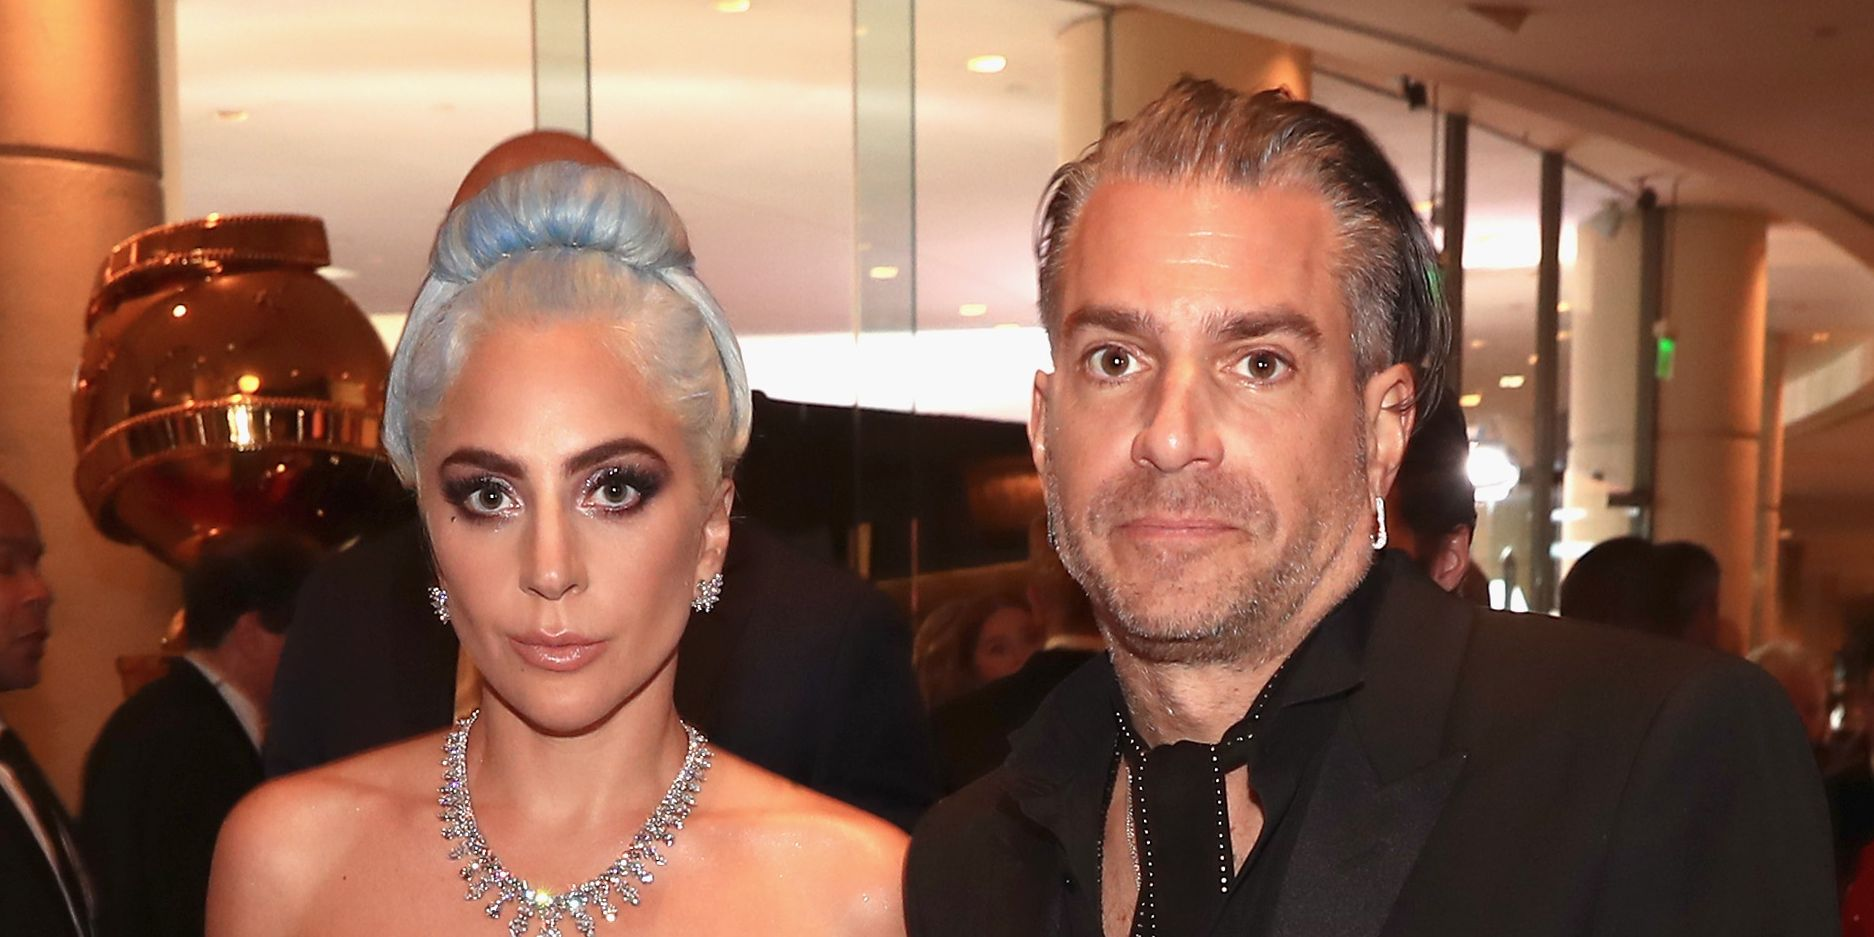 Why fans think Lady Gaga and fiancé Christian Carino have split